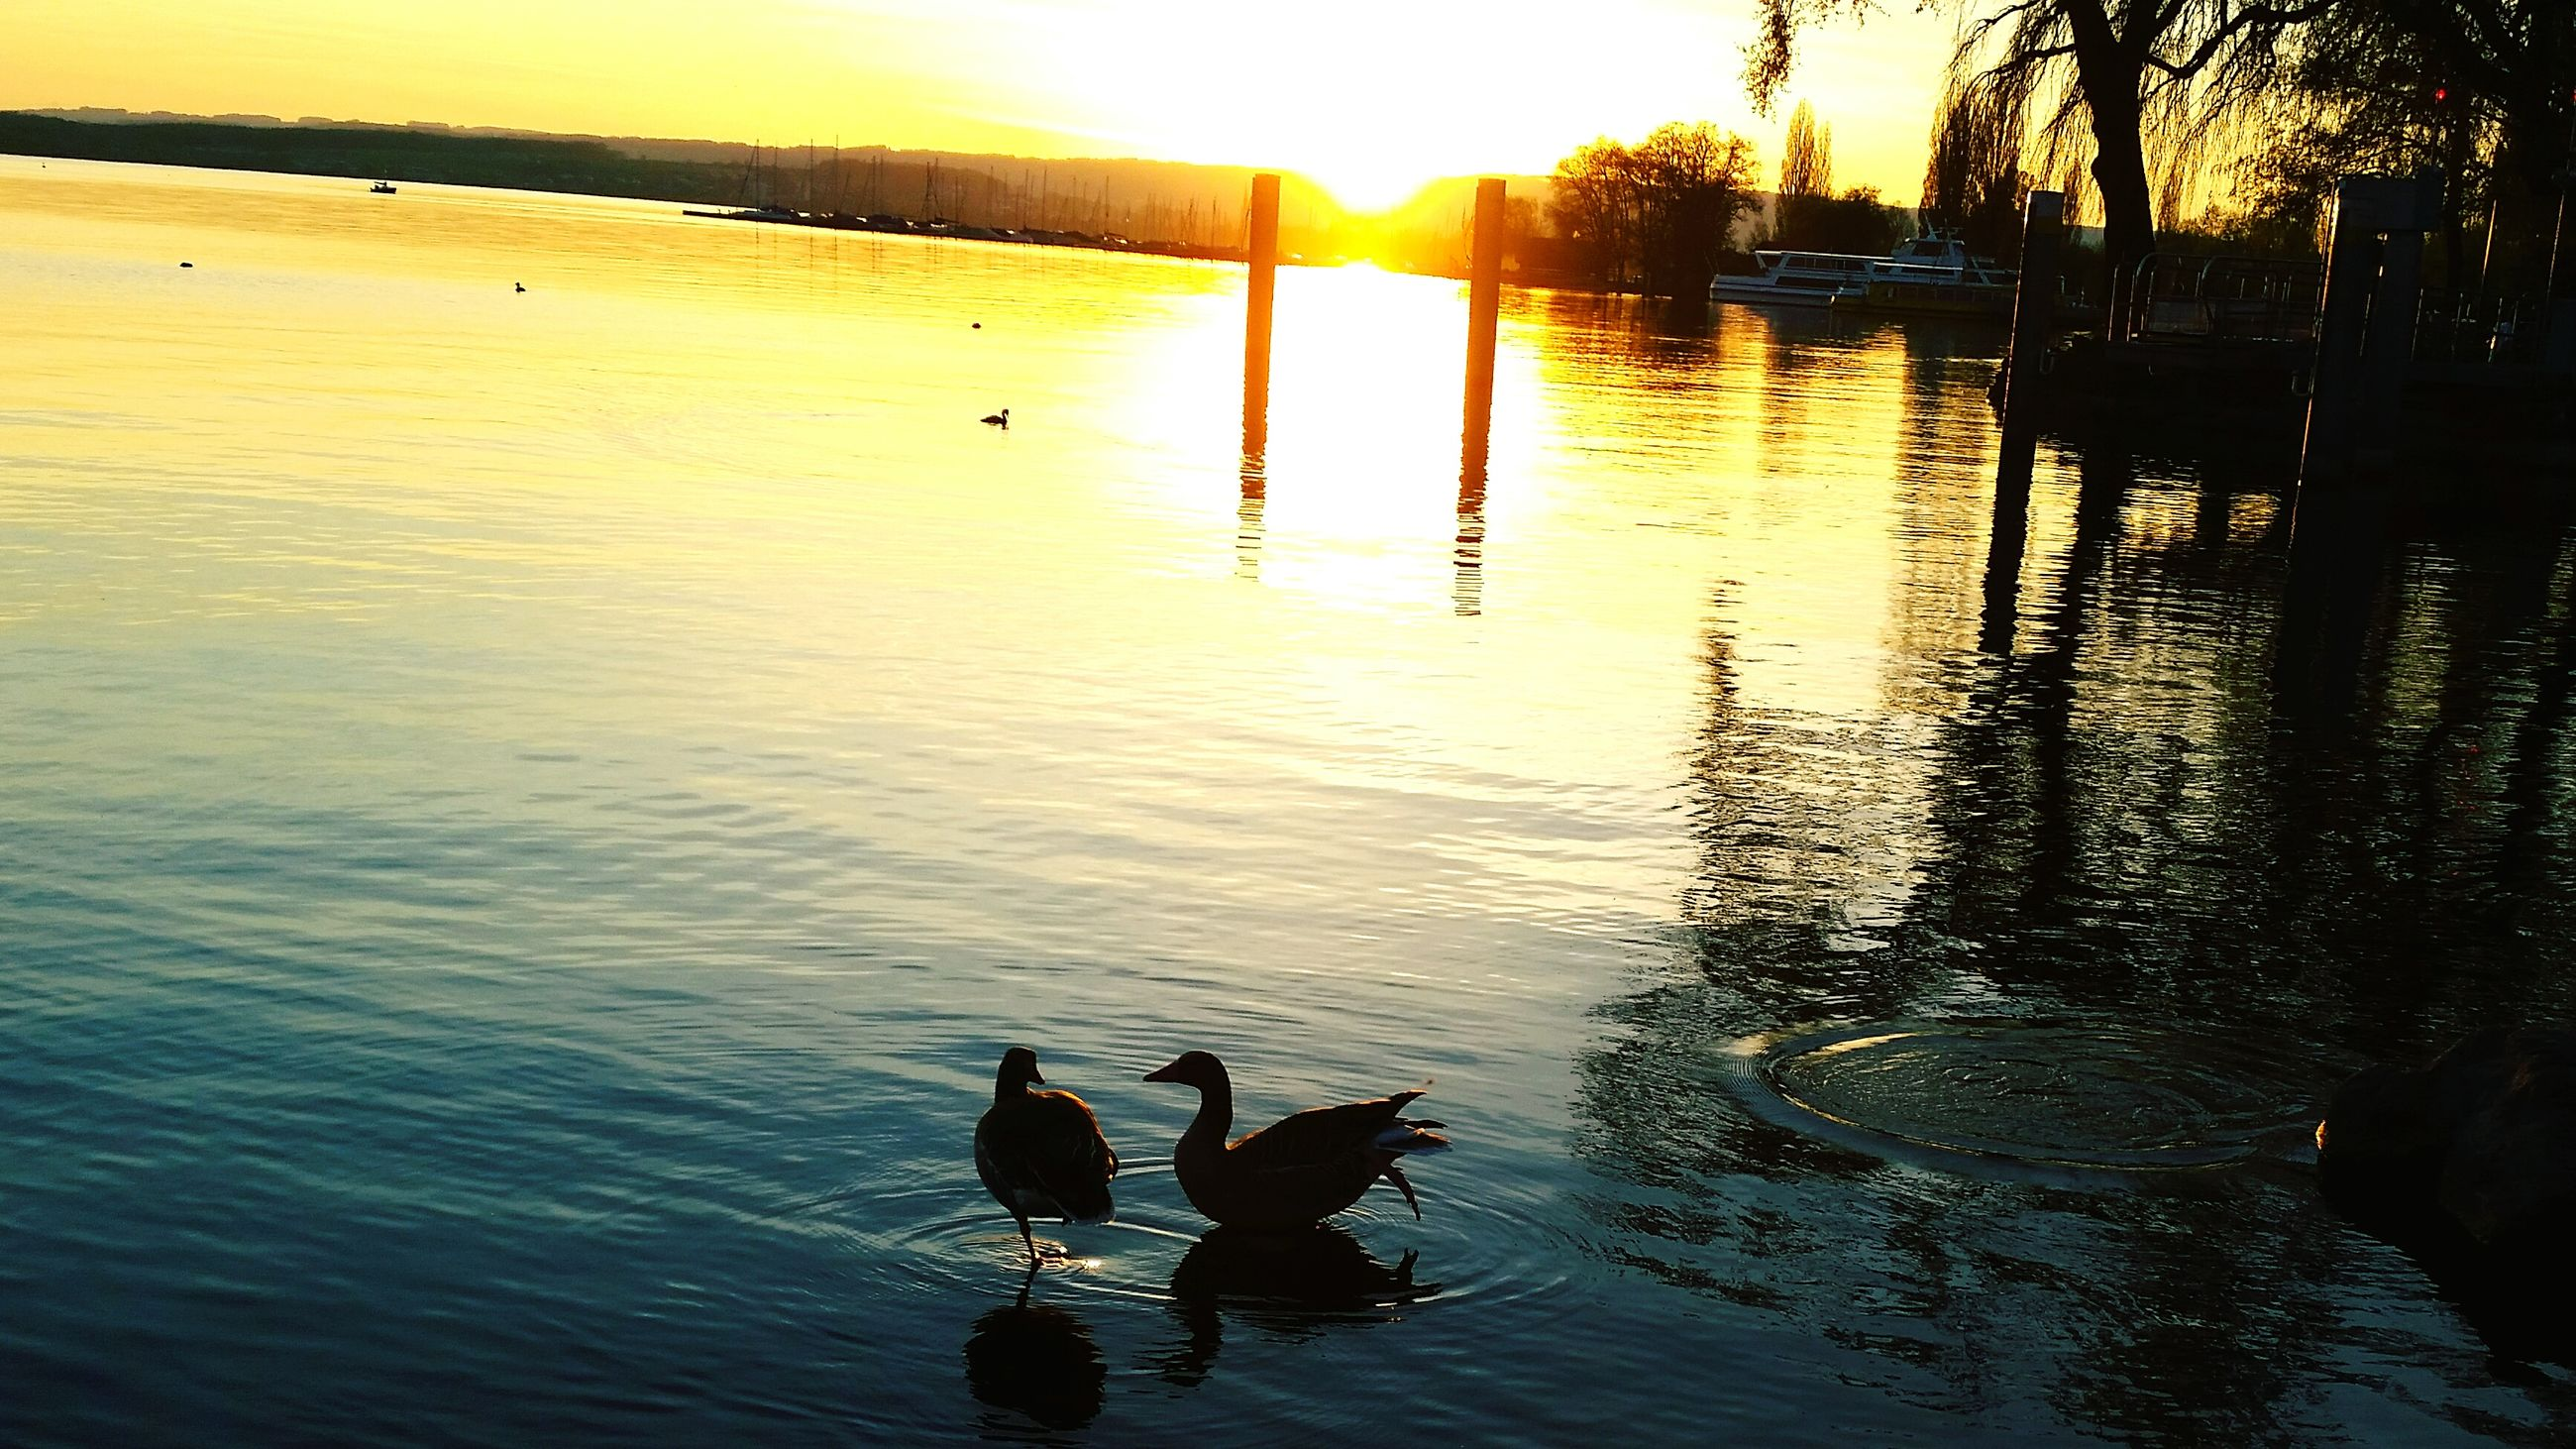 water, reflection, sunset, silhouette, lifestyles, lake, men, leisure activity, sun, sunlight, river, rippled, nature, transportation, person, tranquility, outdoors